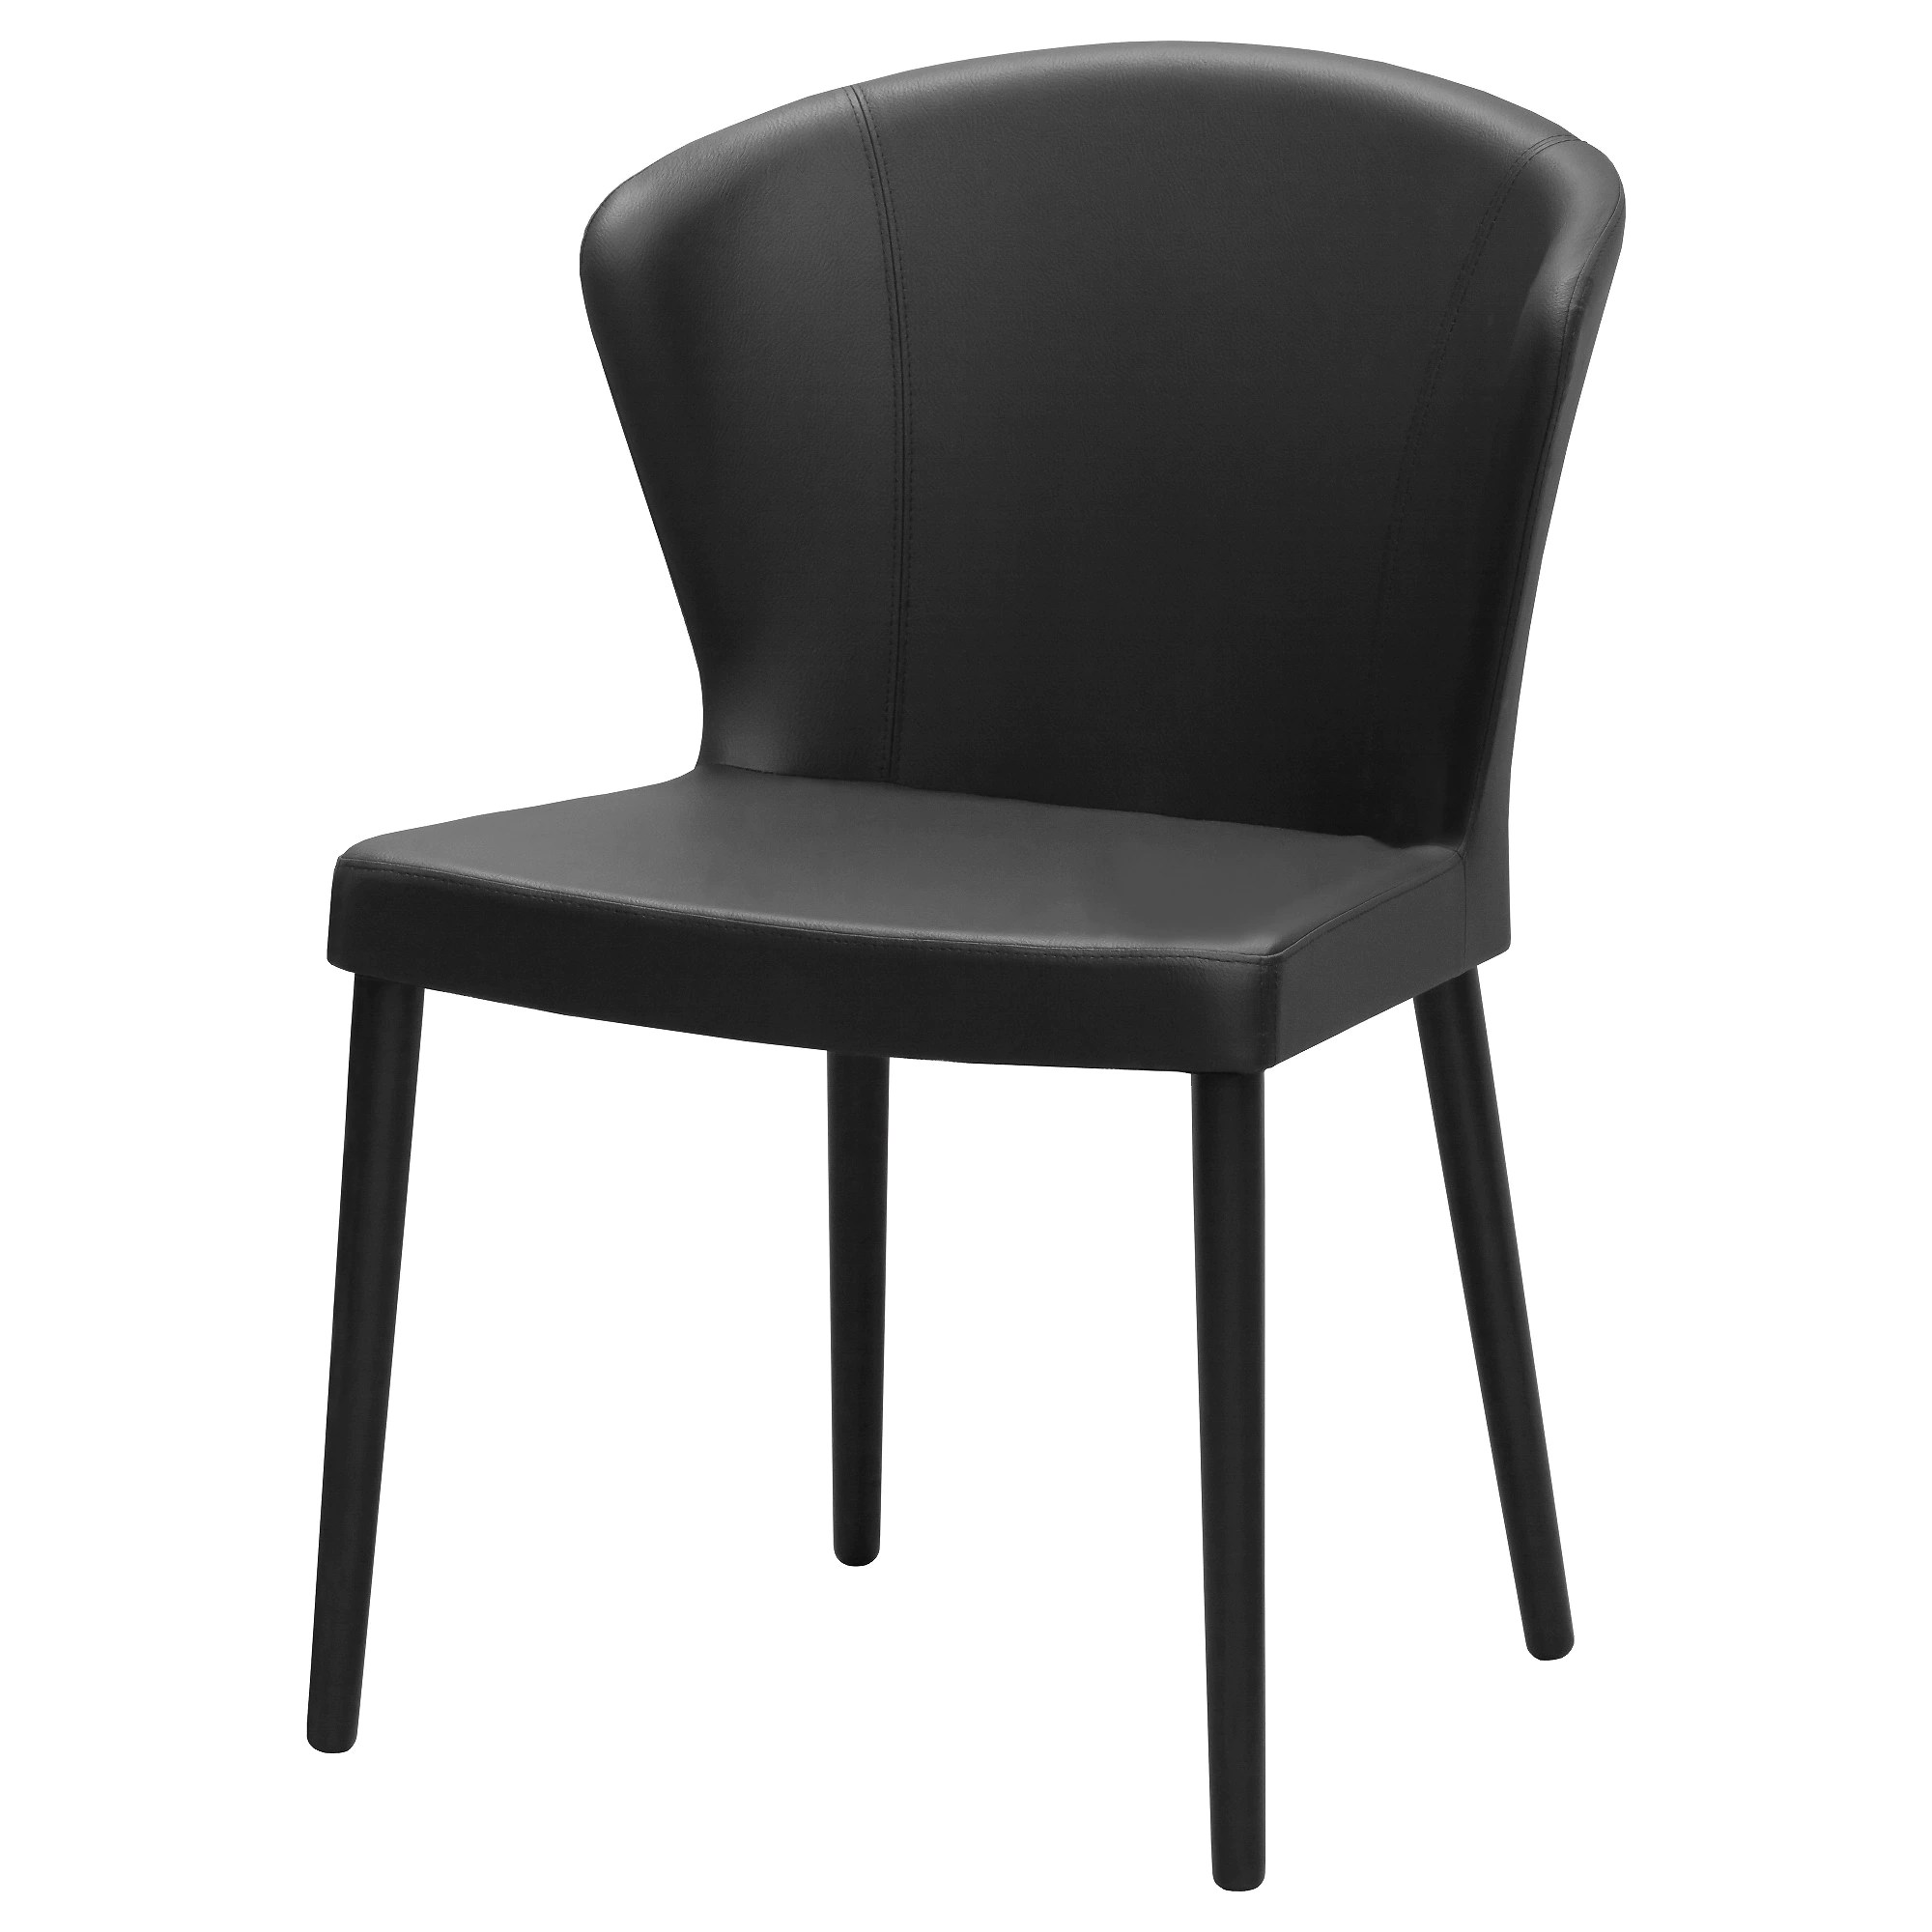 turquoise kitchen chairs ODDMUND chair Idhult black stained Idhult black Width 22 Depth 18